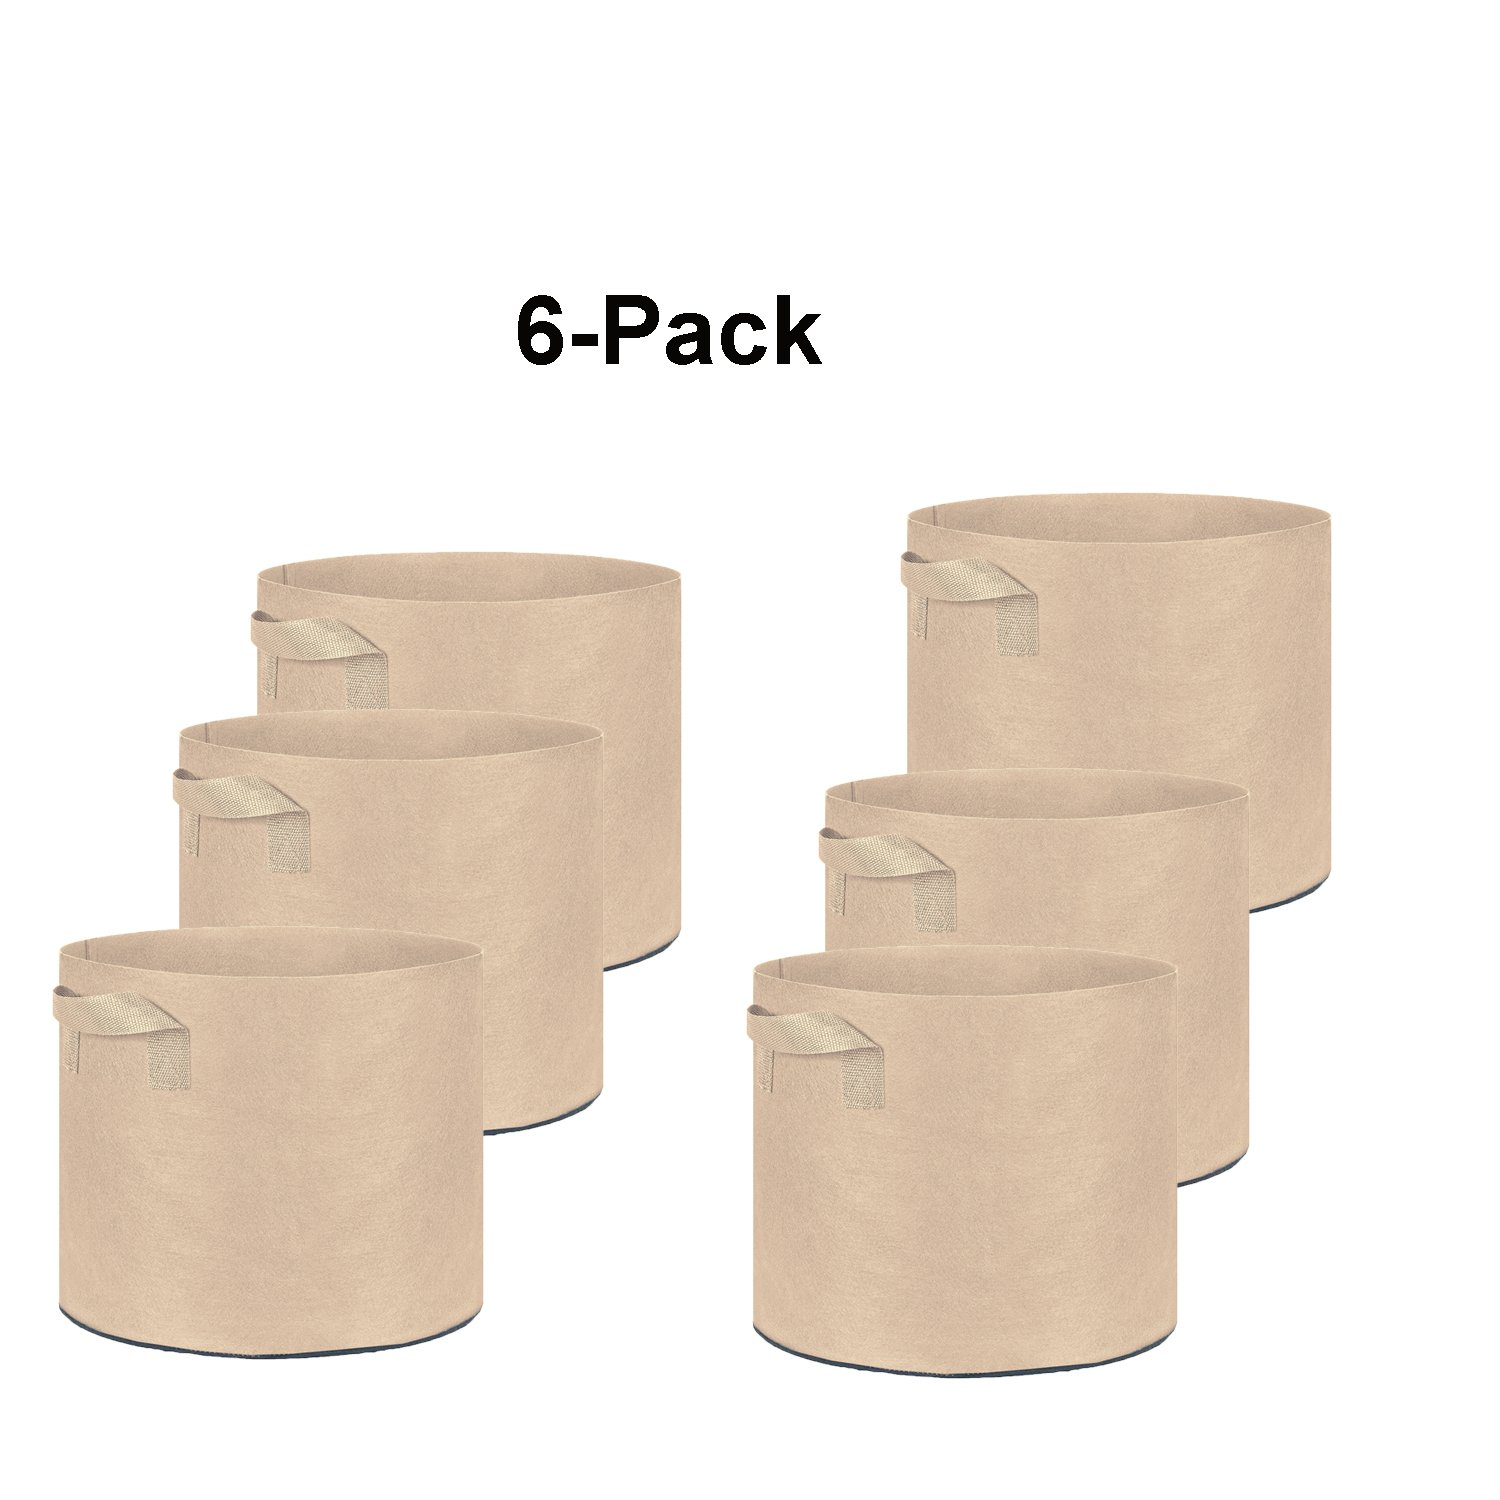 Oppolite 6-Pack 30 Gallon Tan Grow Bags Pots Heavy Duty Fabric Aeration Fabric Pots Grow Bags W/Handles (6, 30 Gallon) by Oppolite